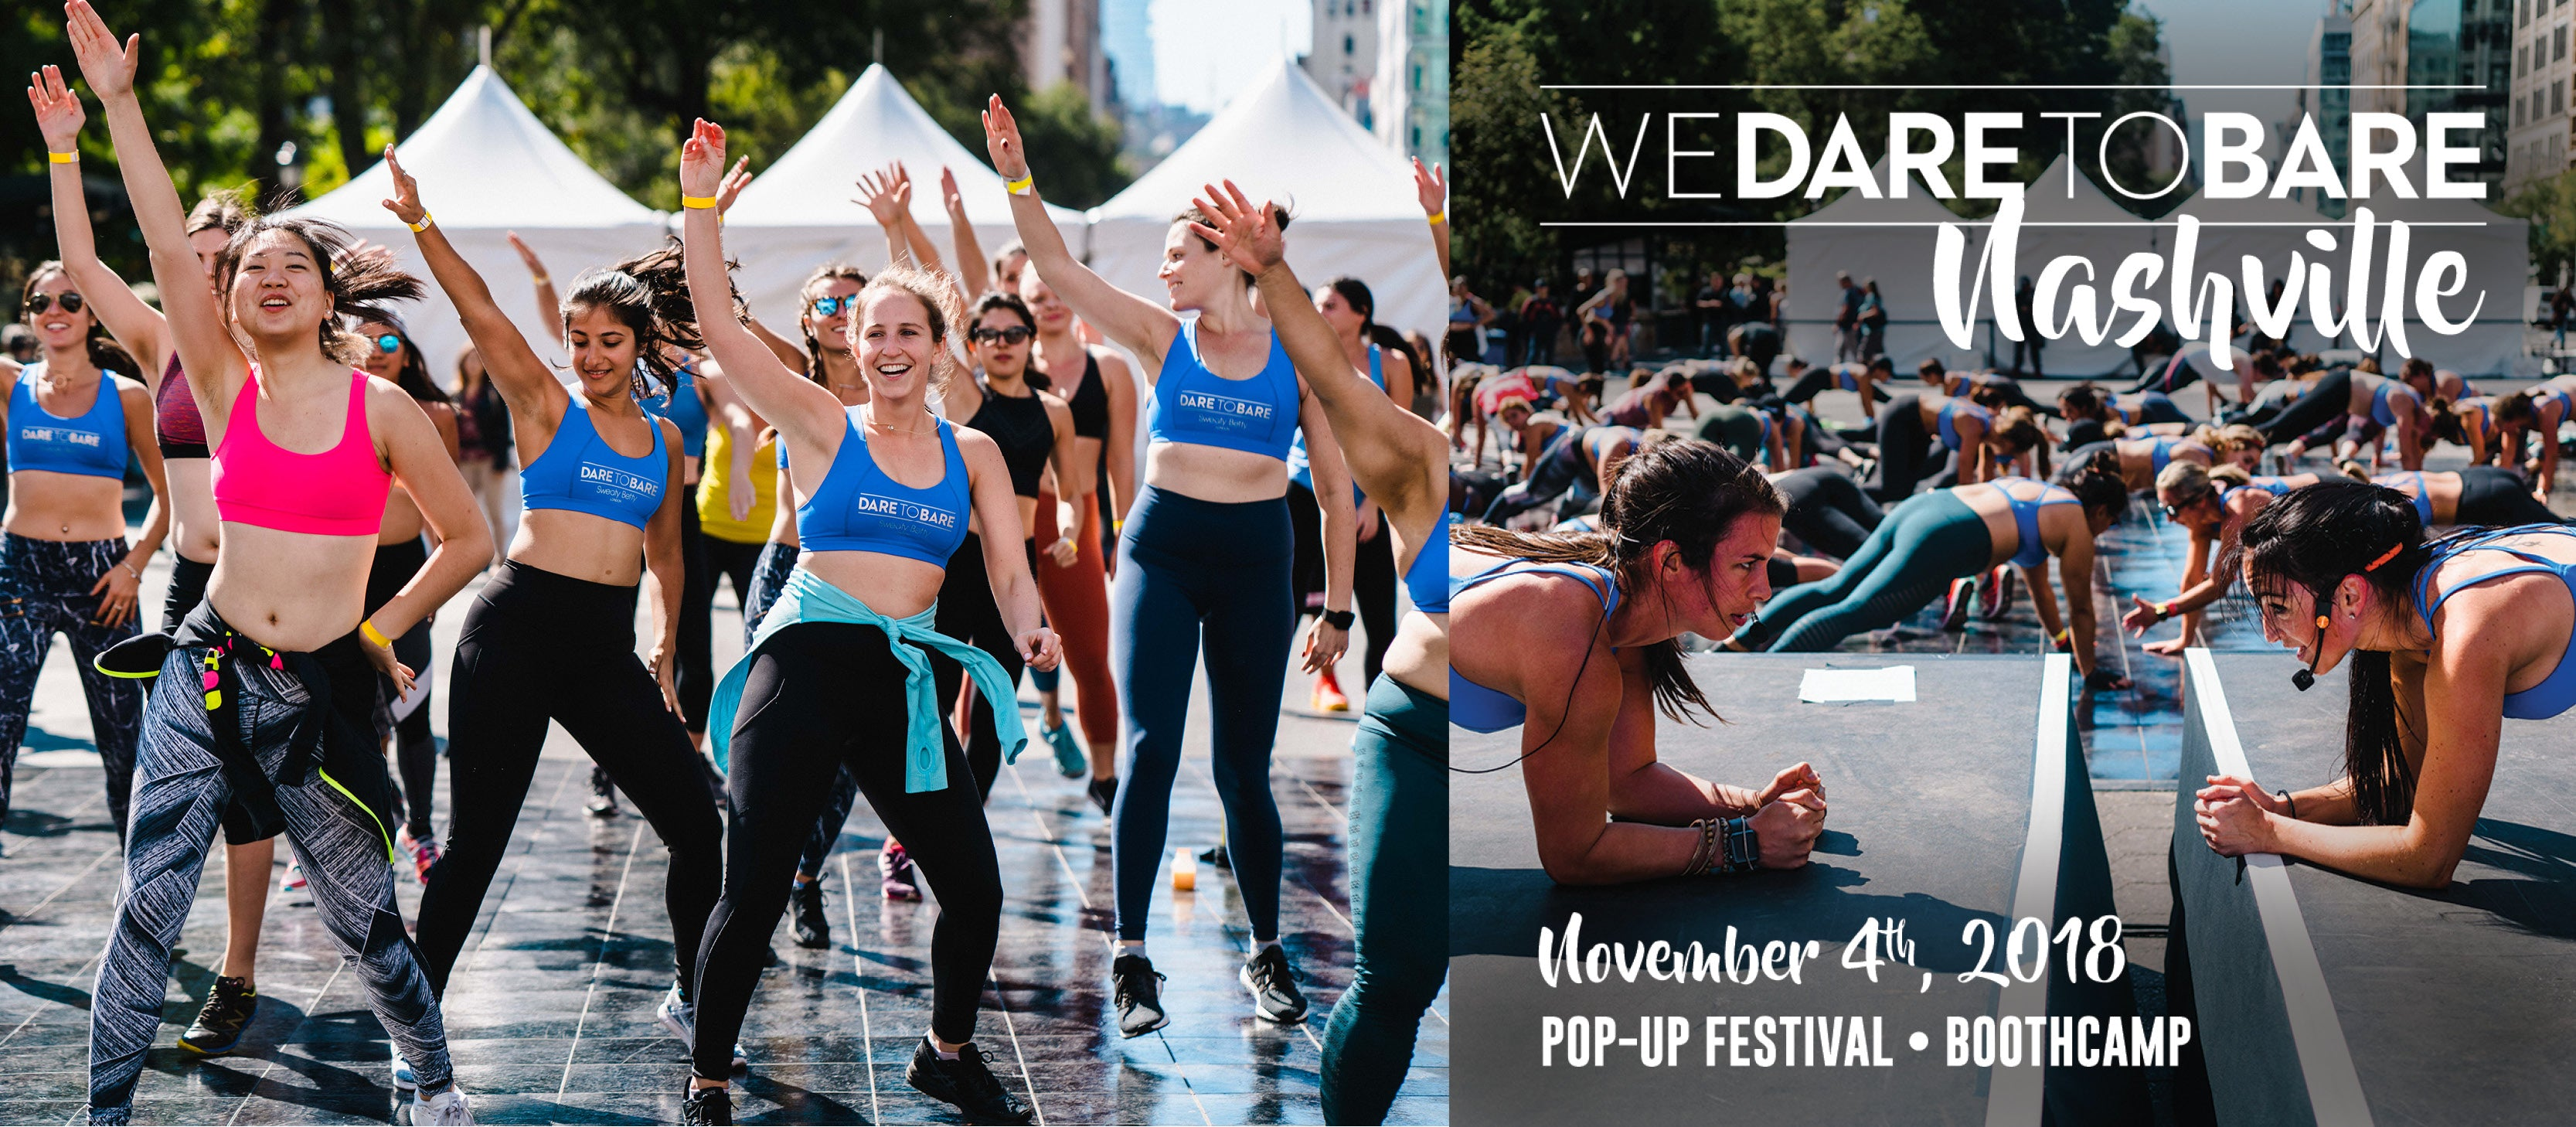 We Dare To Bare Fitness Festival for a Cause Debuts In Nashville